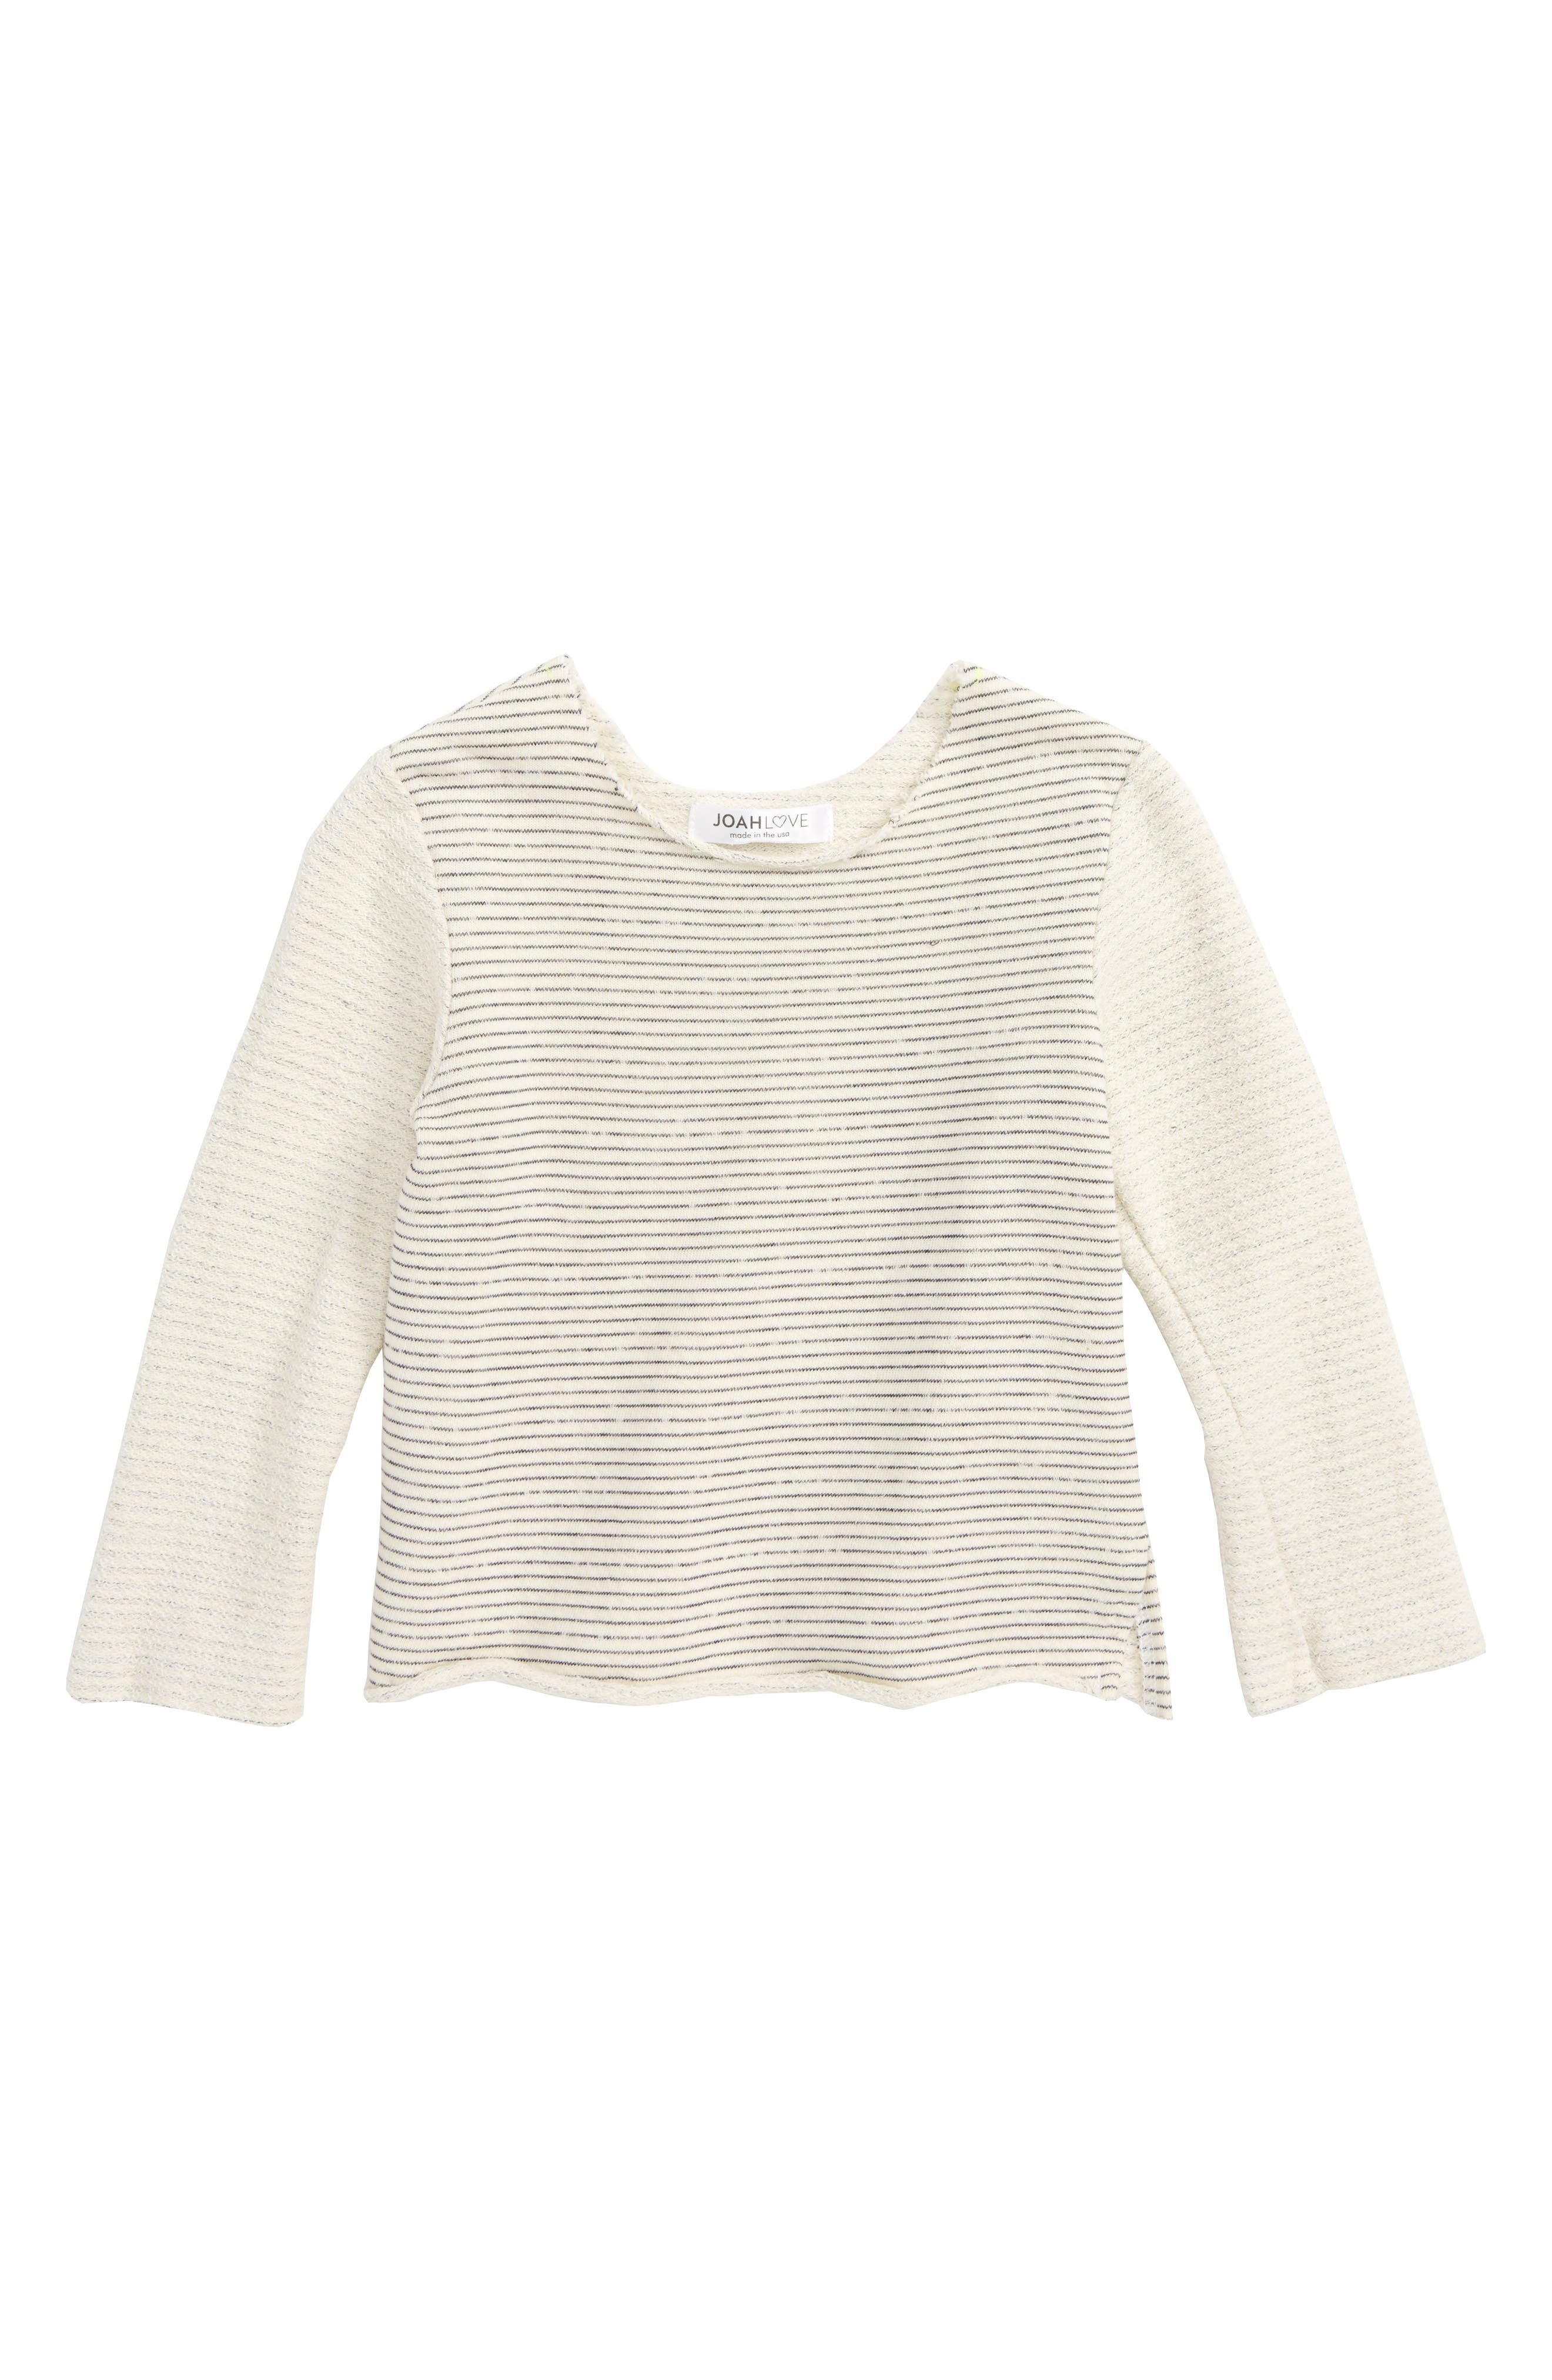 Joah Love Stripe Sweatshirt (Baby Boys)